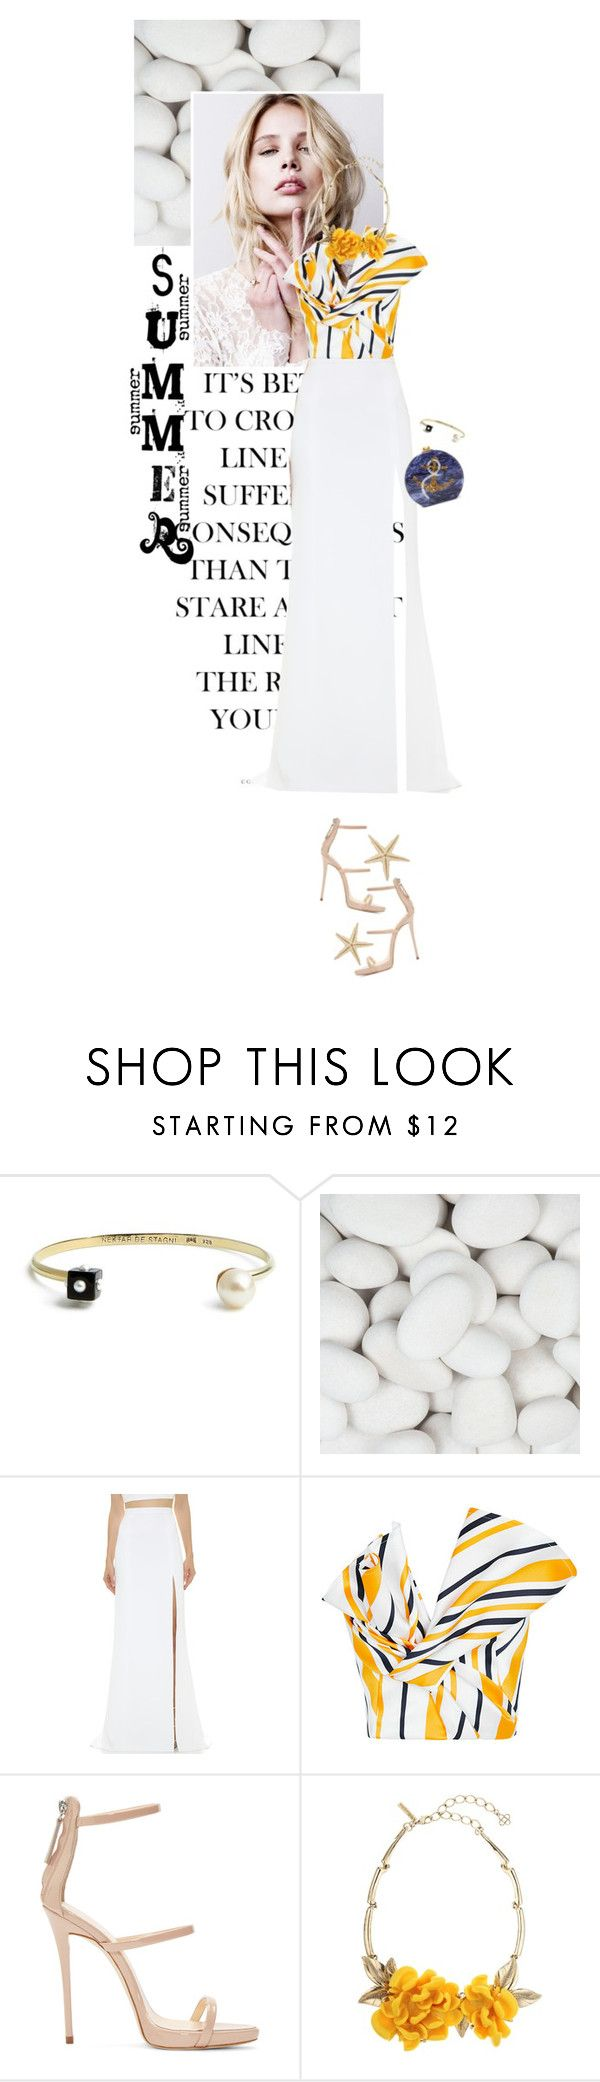 """One Direction: Striped Shirts"" by fashionbrownies ❤ liked on Polyvore featuring Nektar De Stagni, J. Mendel, Maticevski, Giuseppe Zanotti, Oscar de la Renta, Edie Parker and stripes"